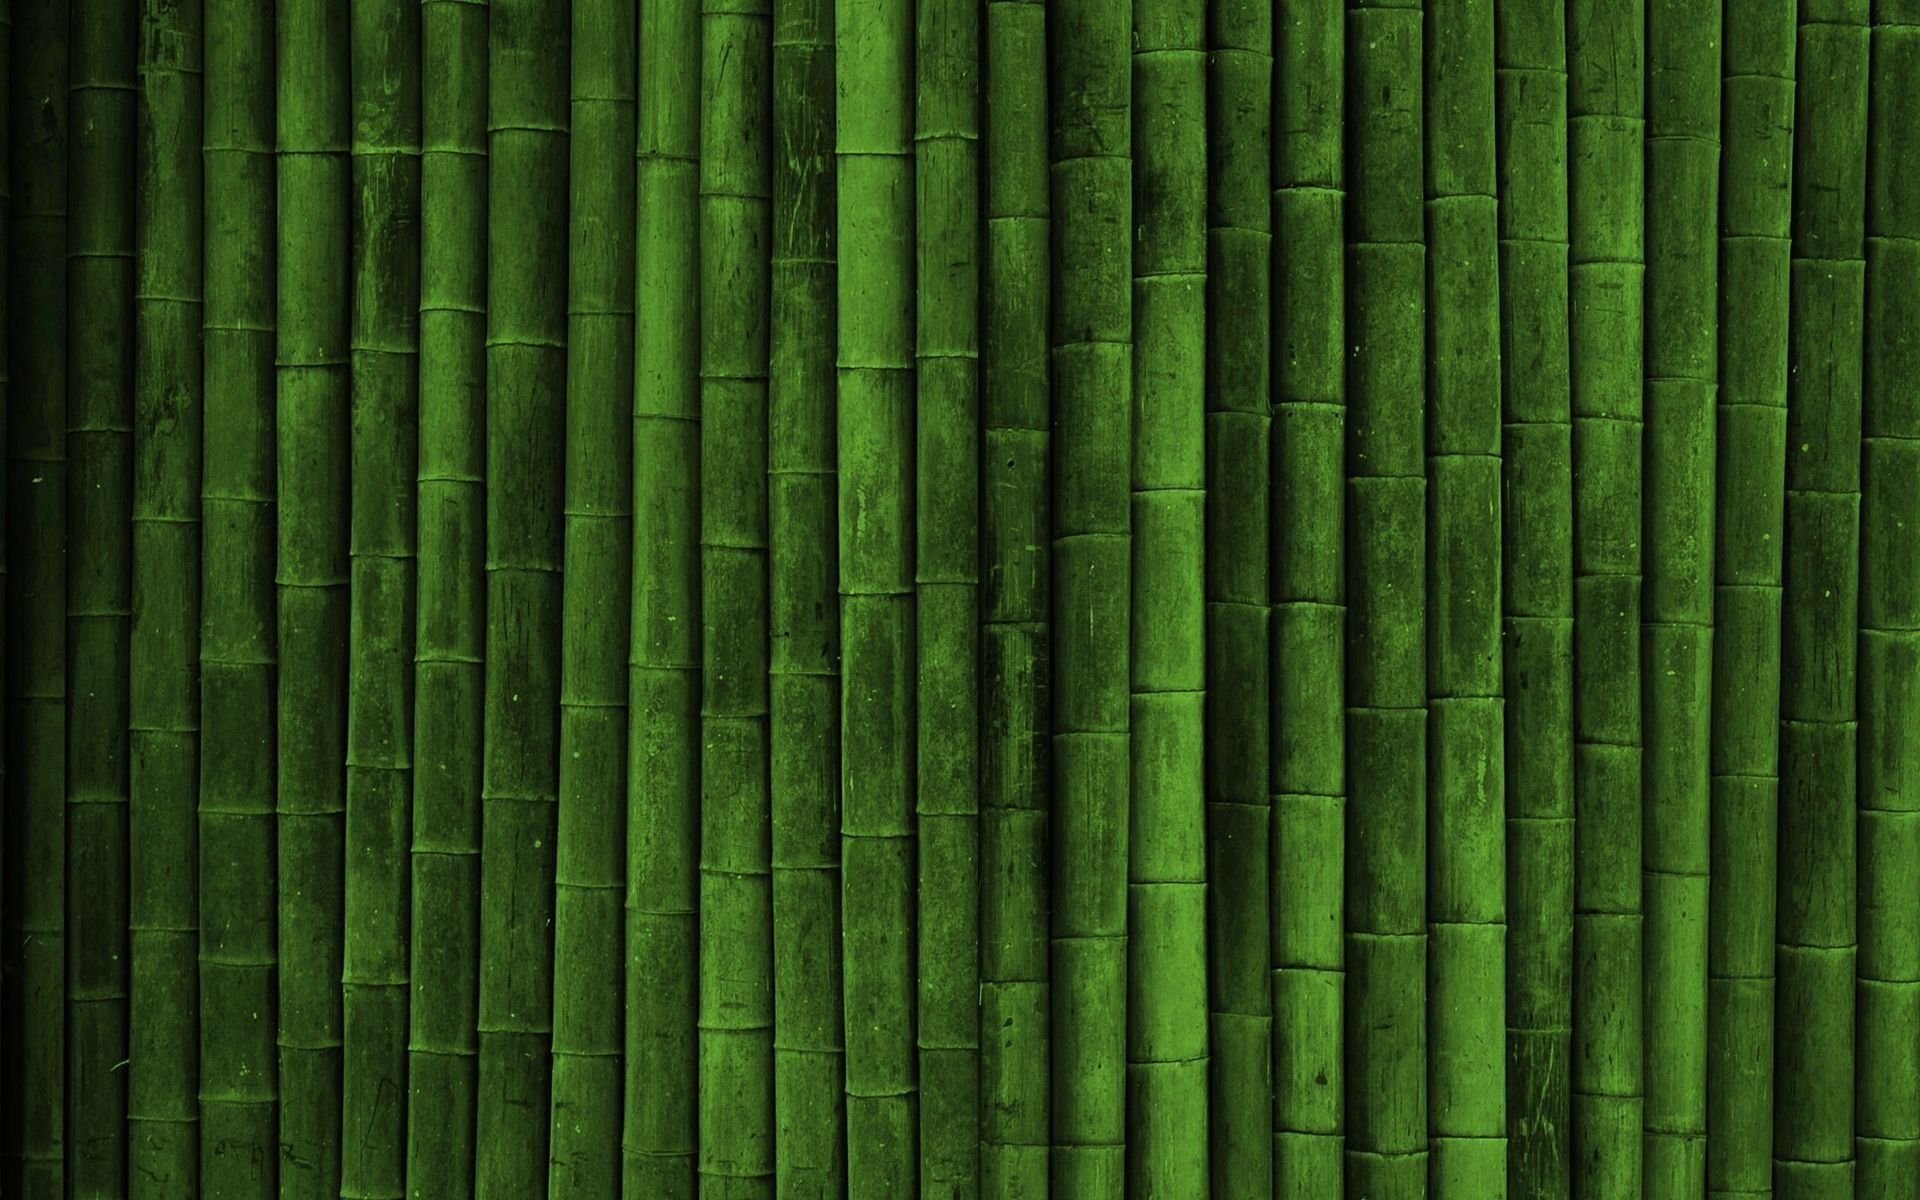 1920x1200  free bamboo background  for iphone 5s